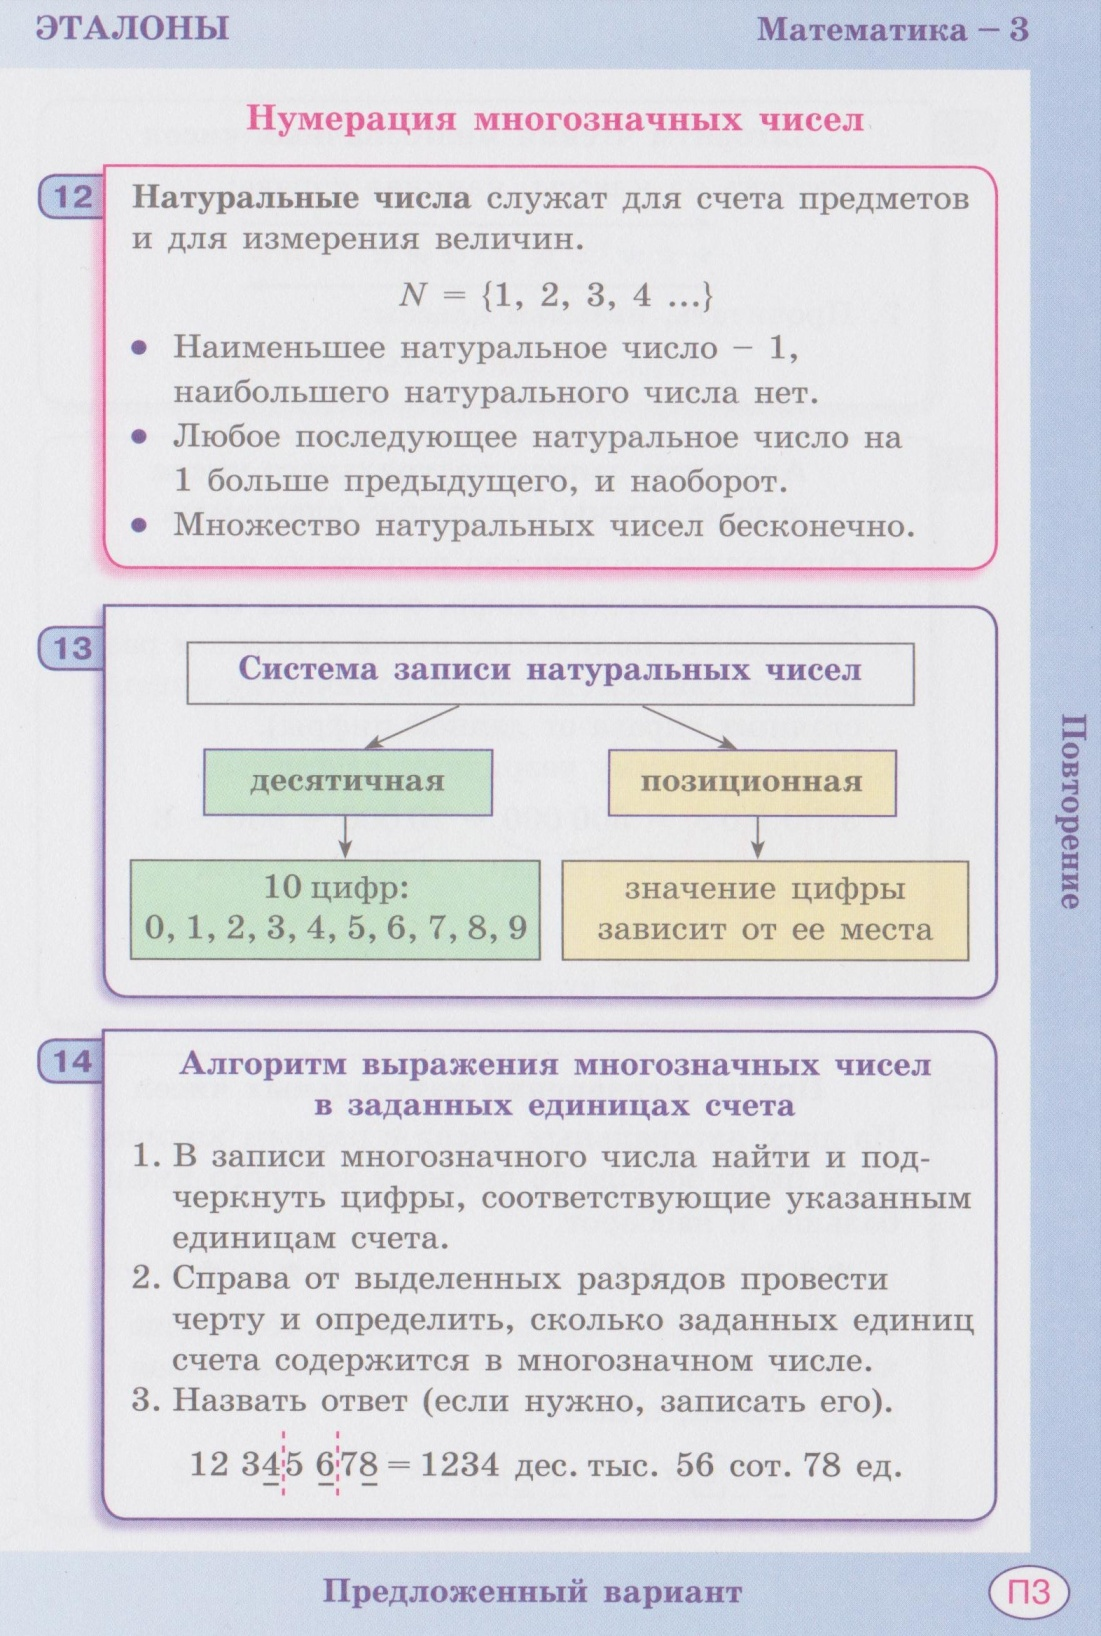 C:\Users\Настя\Pictures\2012-09-08 3\3 001.jpg